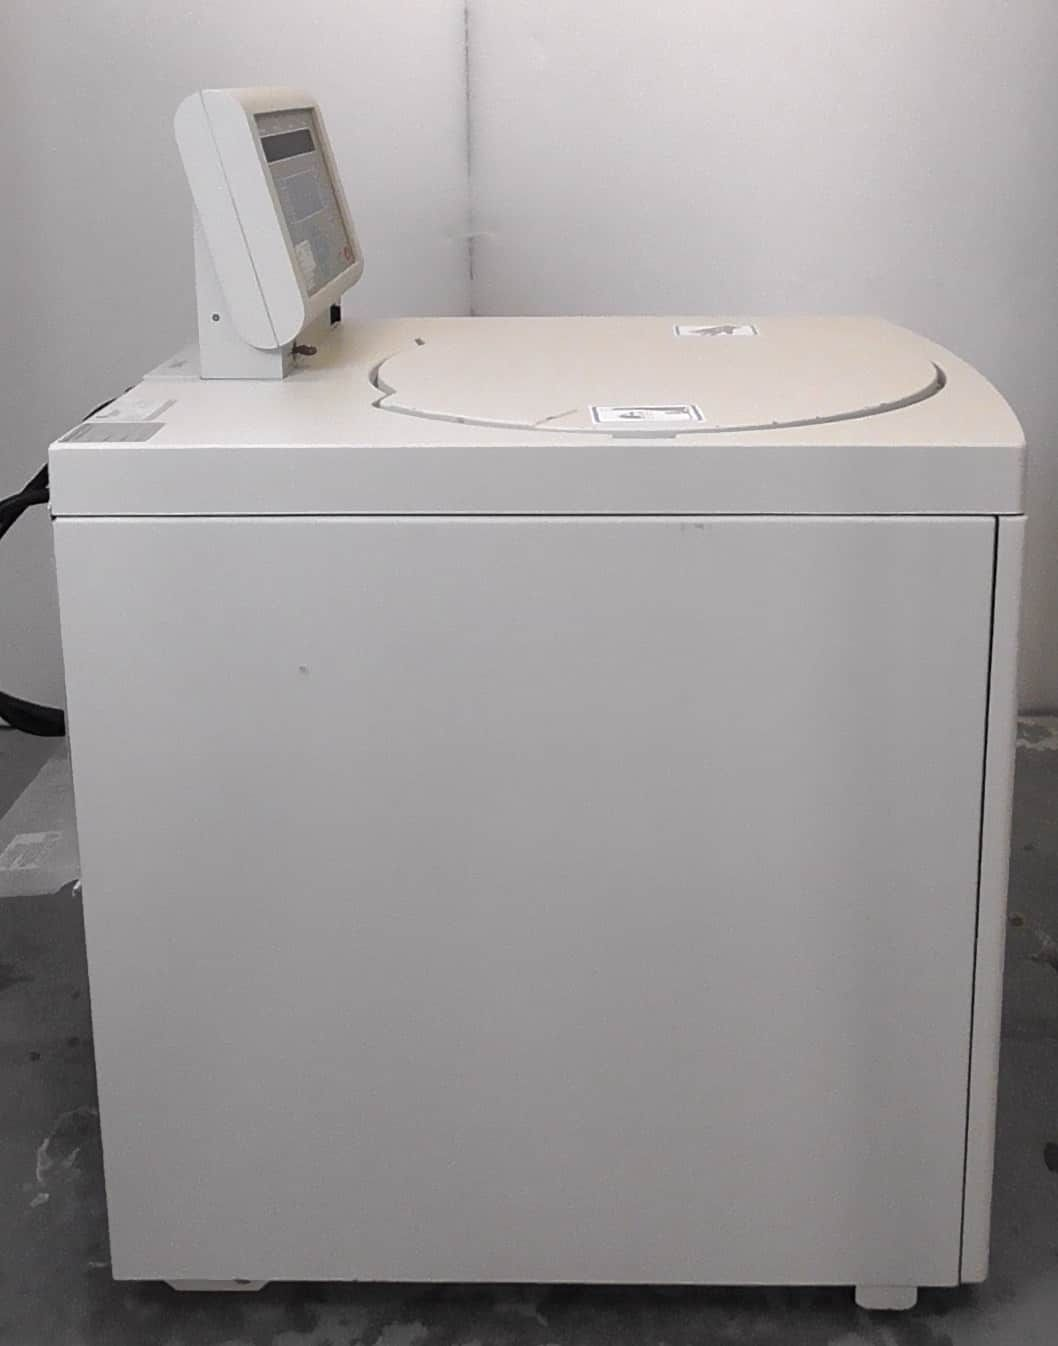 Beckman Coulter J-20 XPI Centrifuge with Optional Rotor